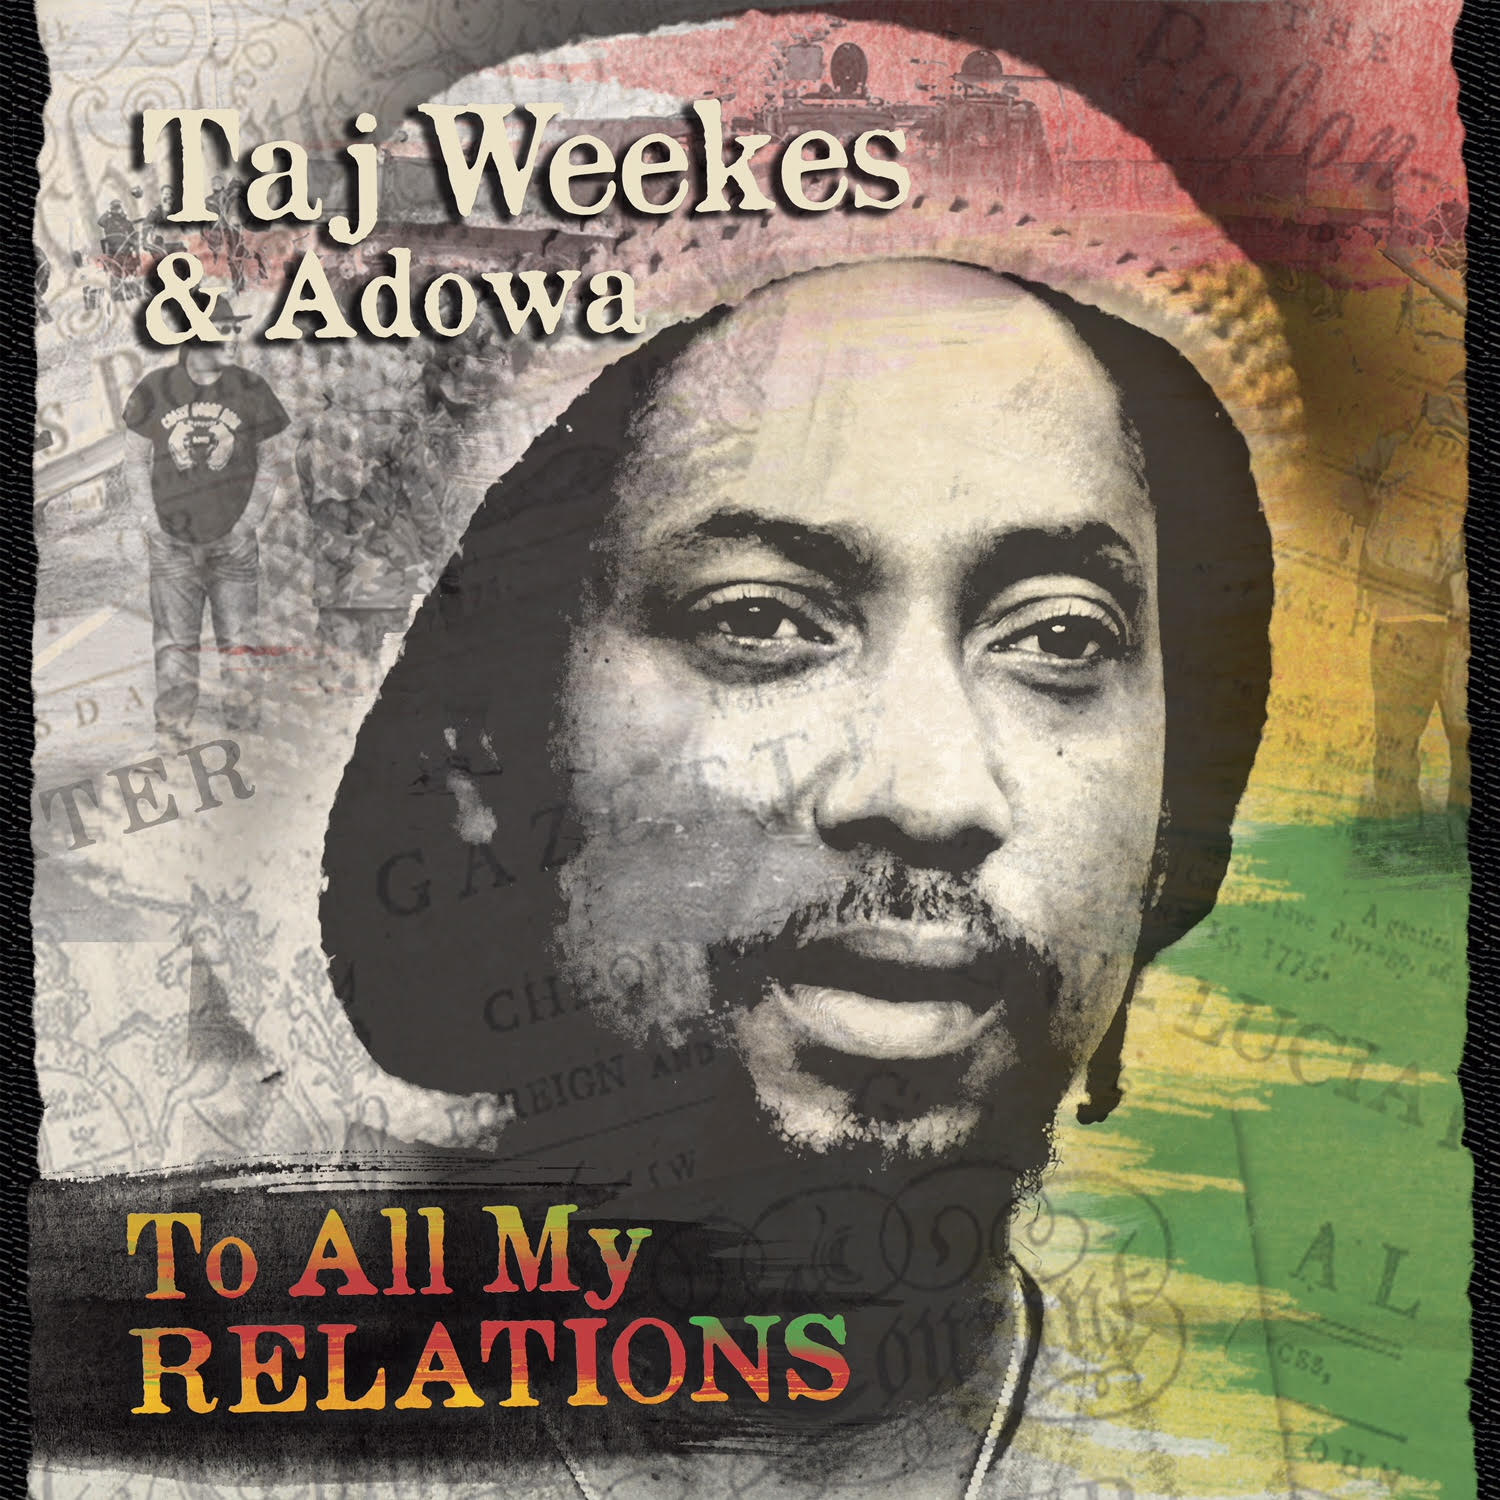 Image result for taj weekes to all my relations